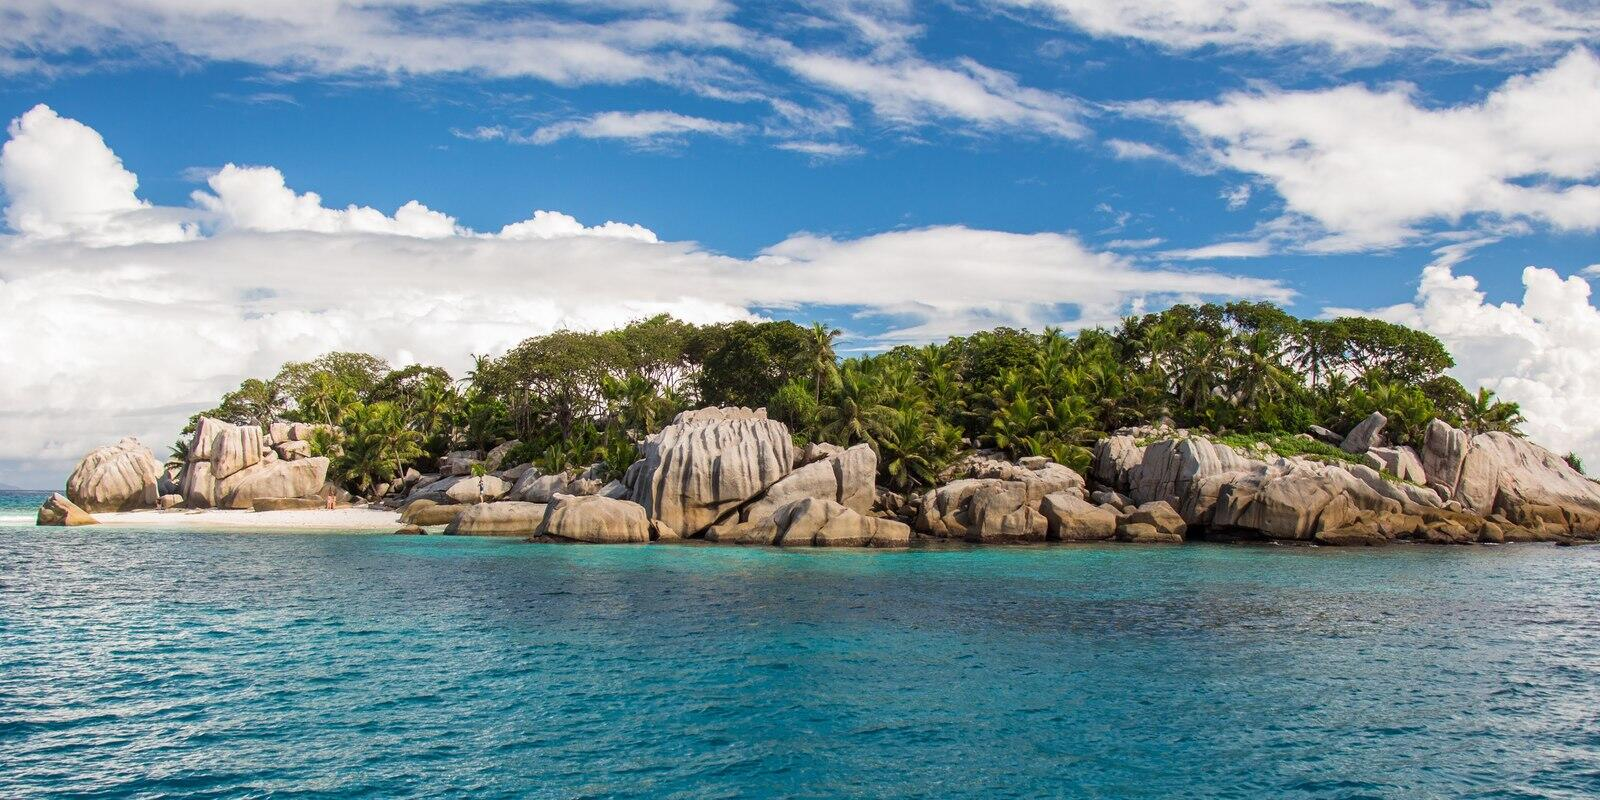 Premium Cruise 8 days on a Catamaran with hostess in Seychelles - All Inclusive